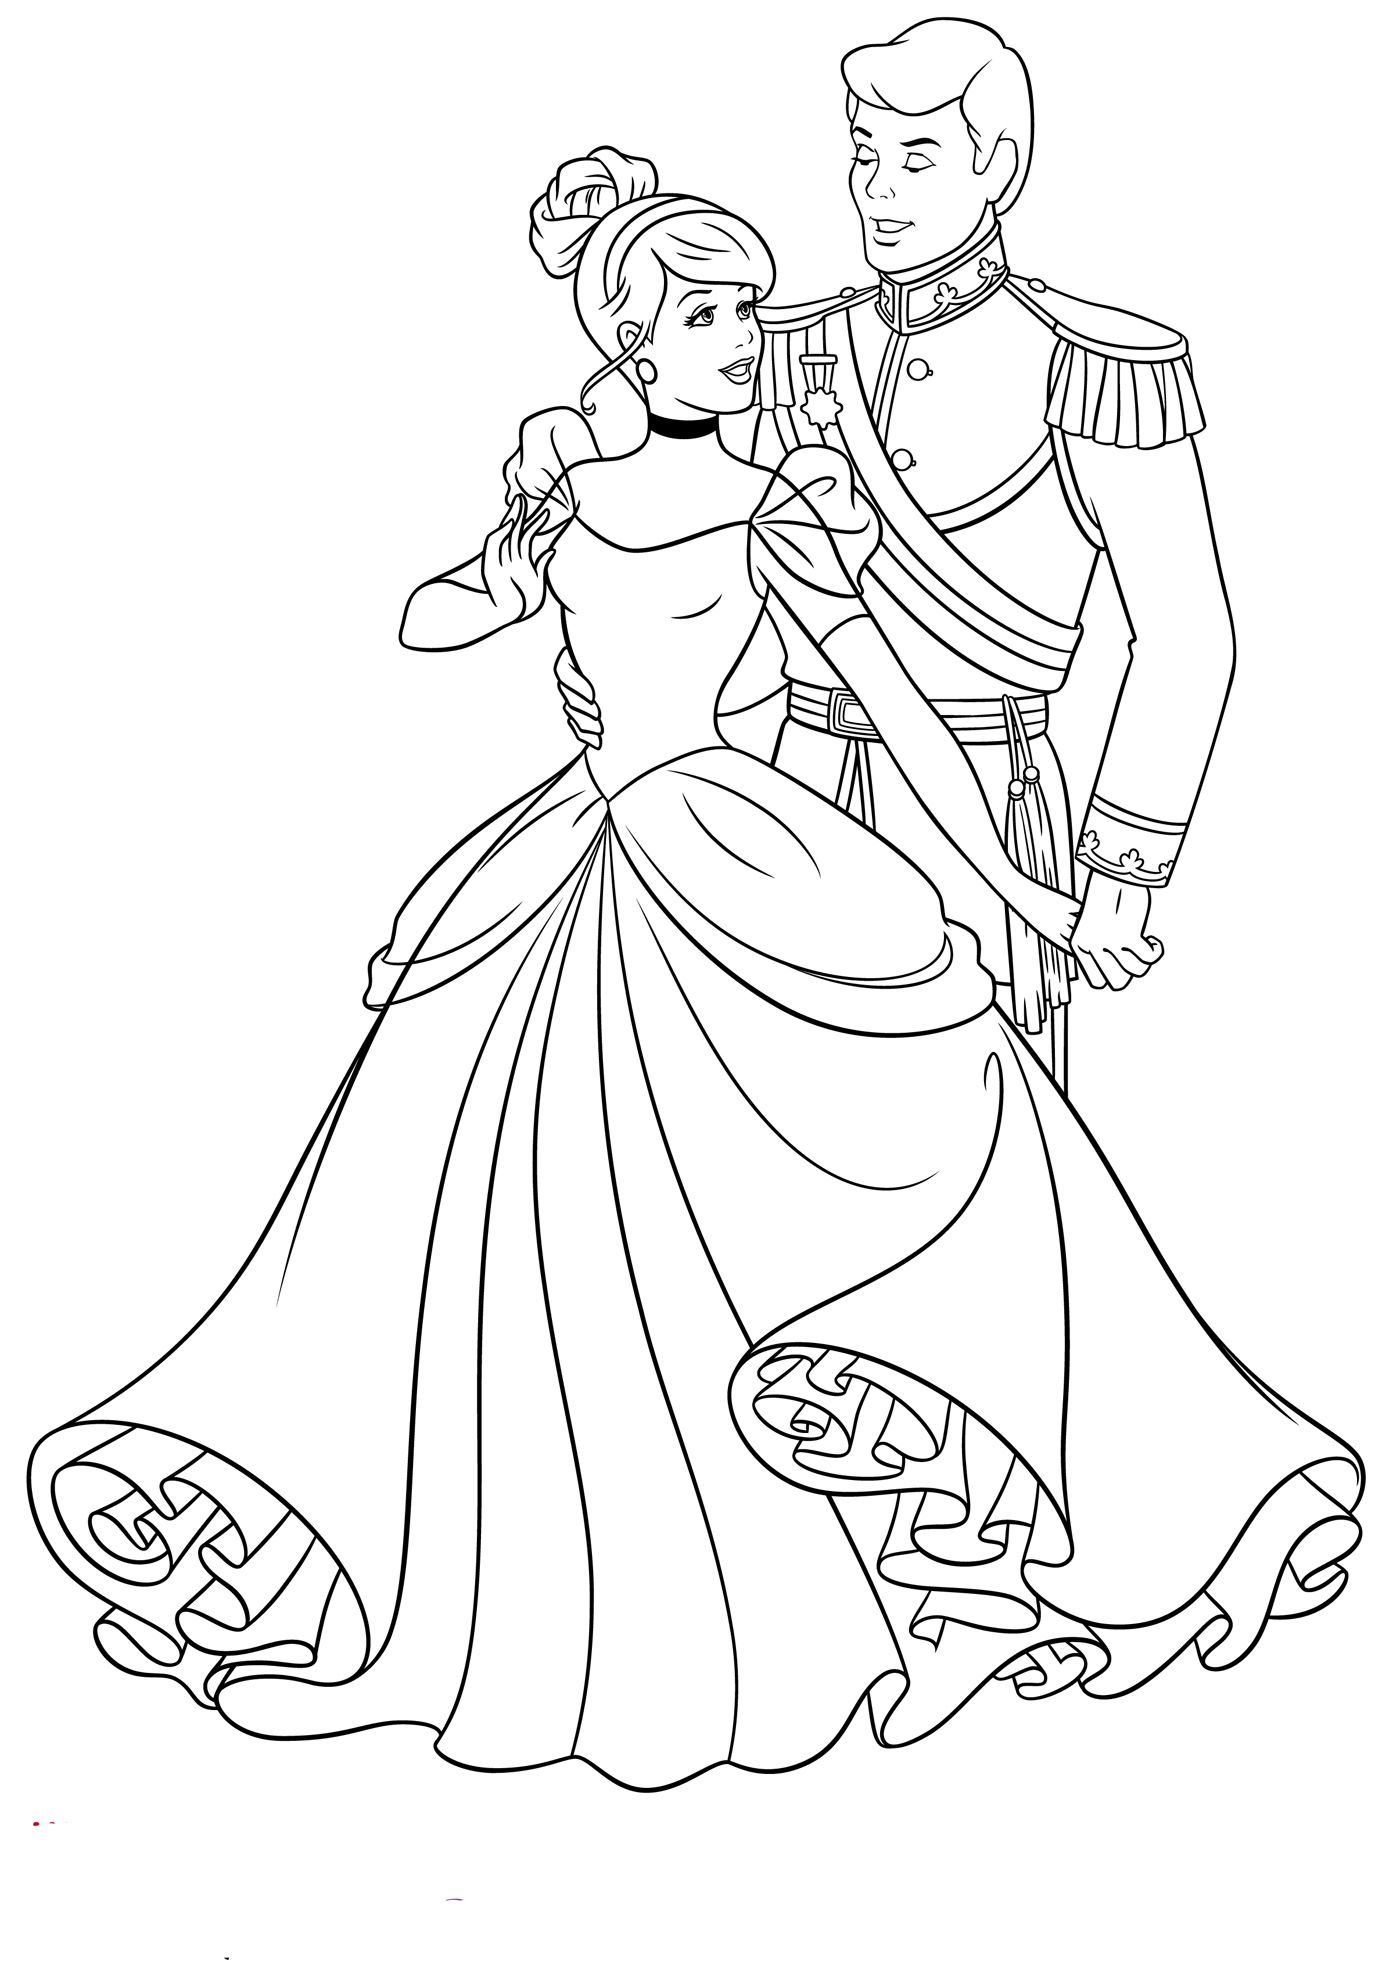 coloring pages of cinderella ella is here cinderella disney coloring pages cinderella pages coloring of